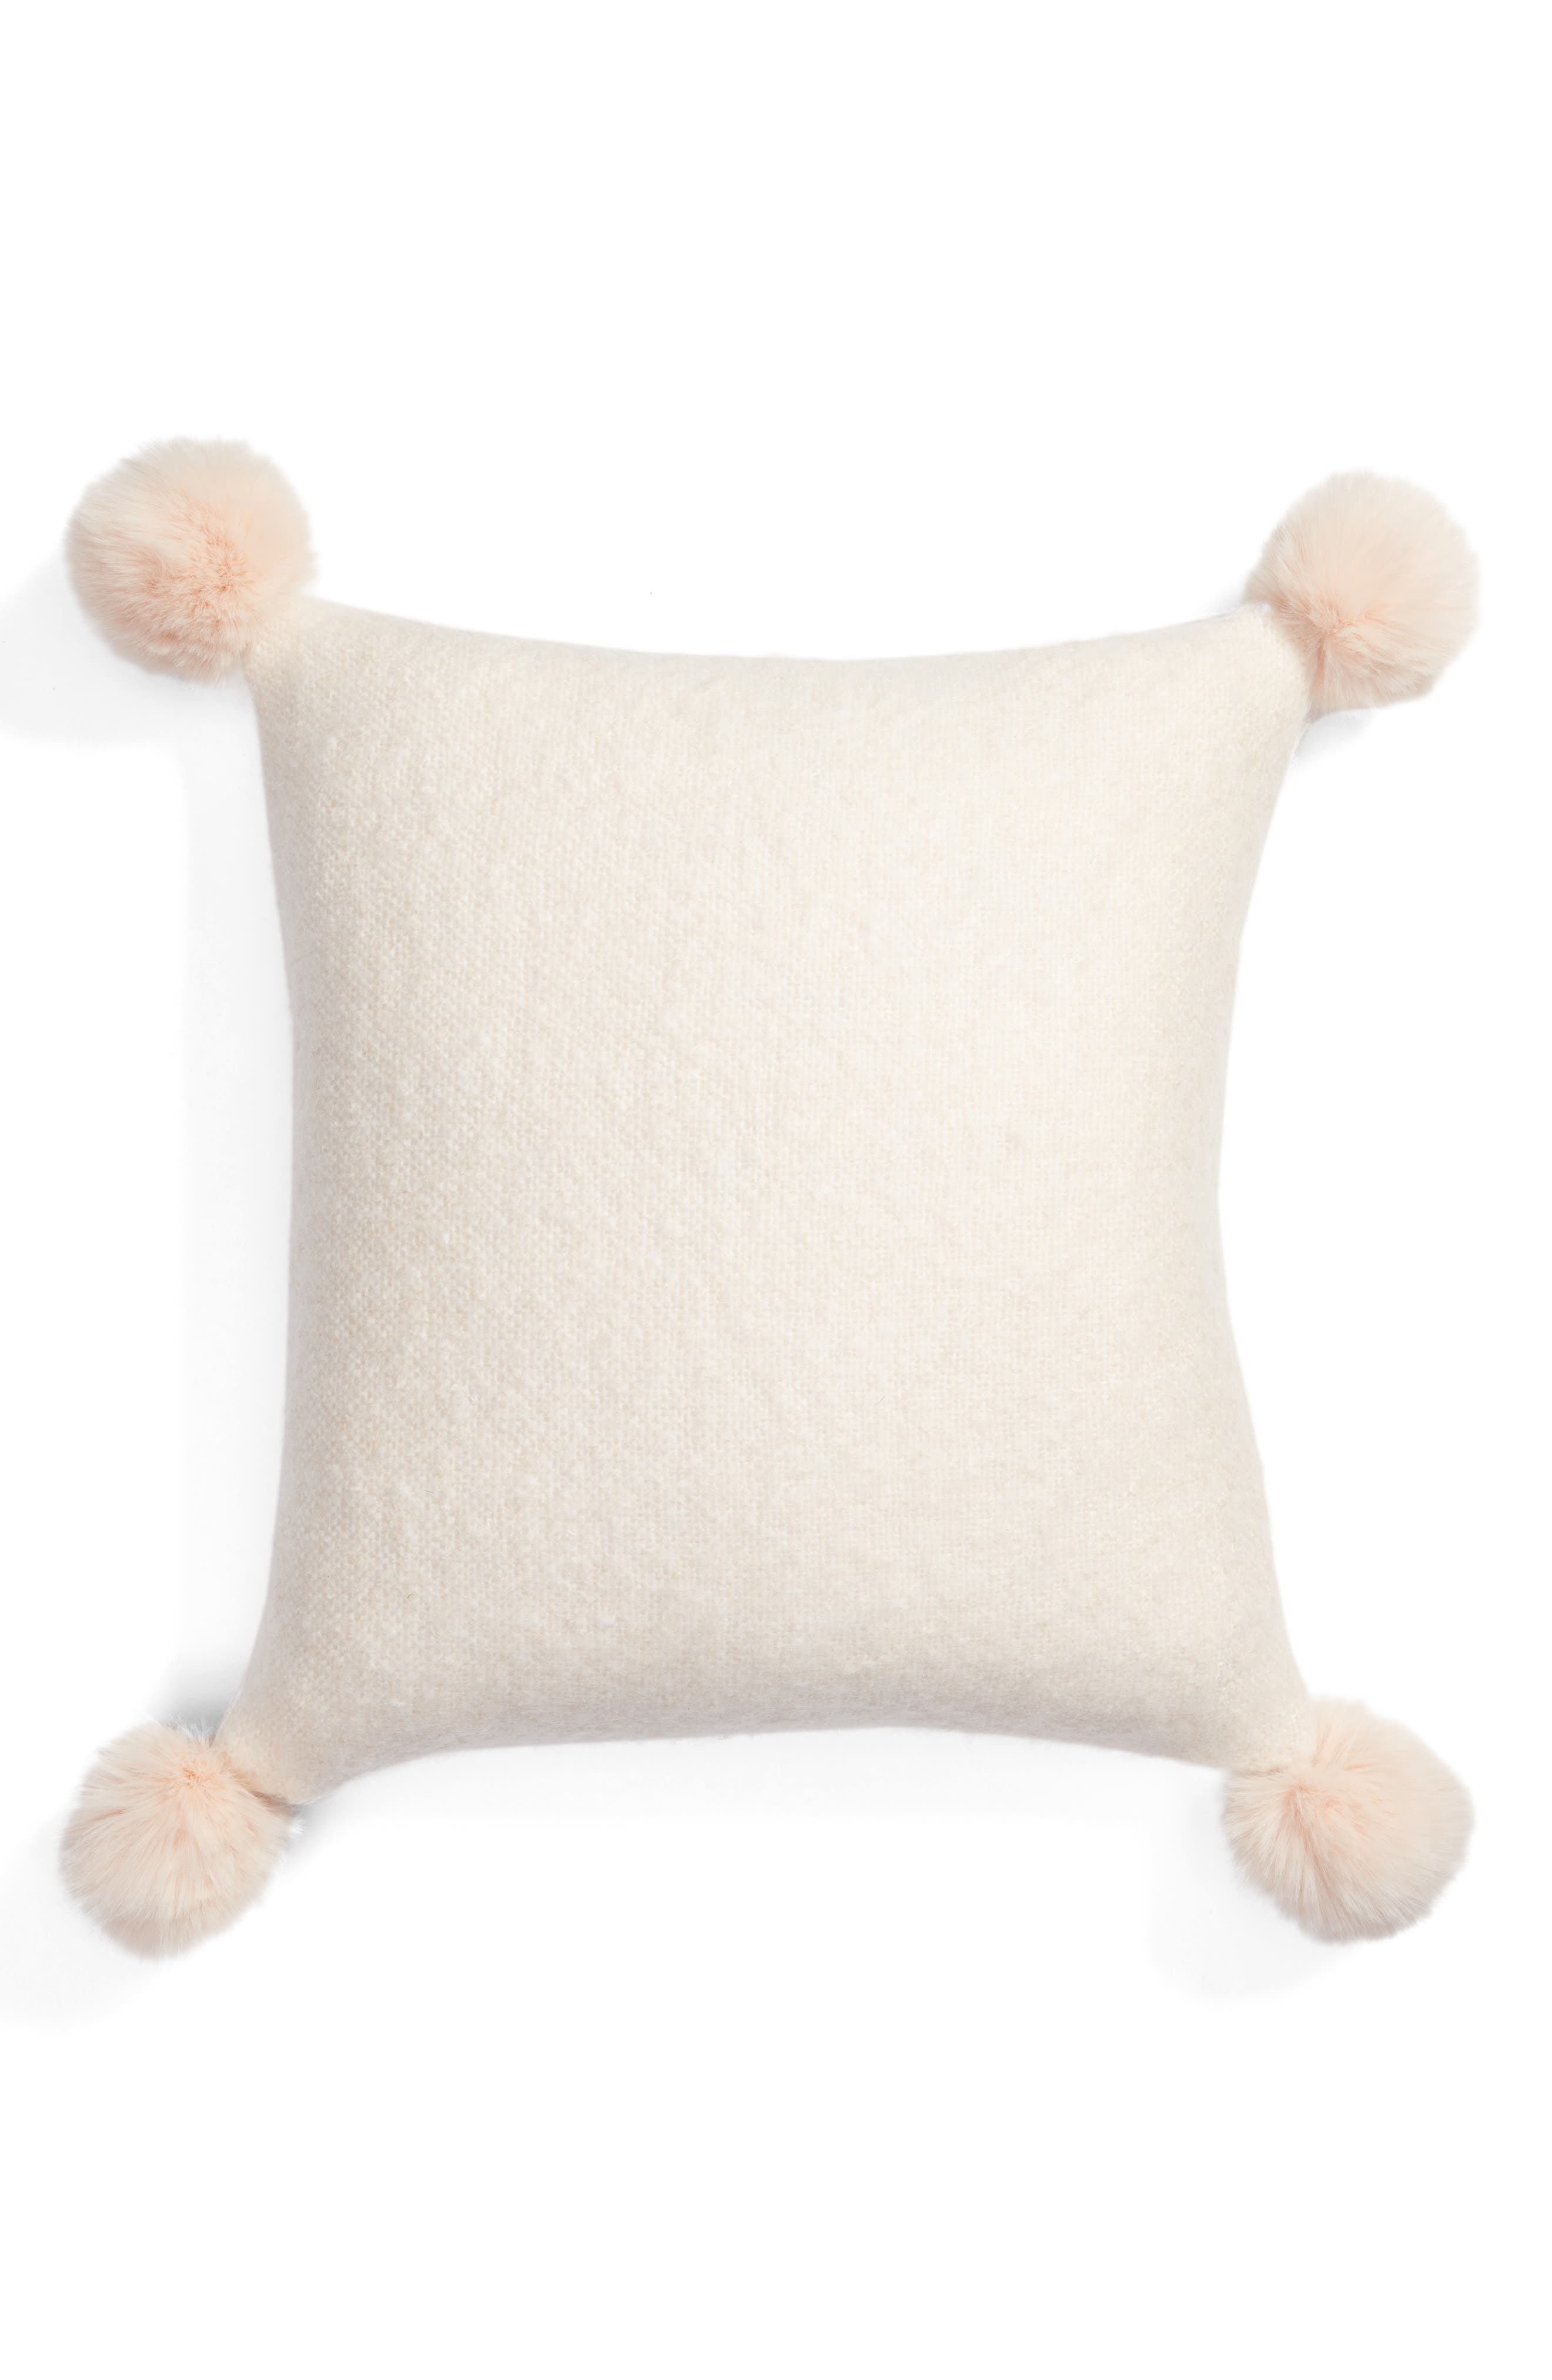 Brushed Accent Pillow with Pompoms,                             Main thumbnail 5, color,